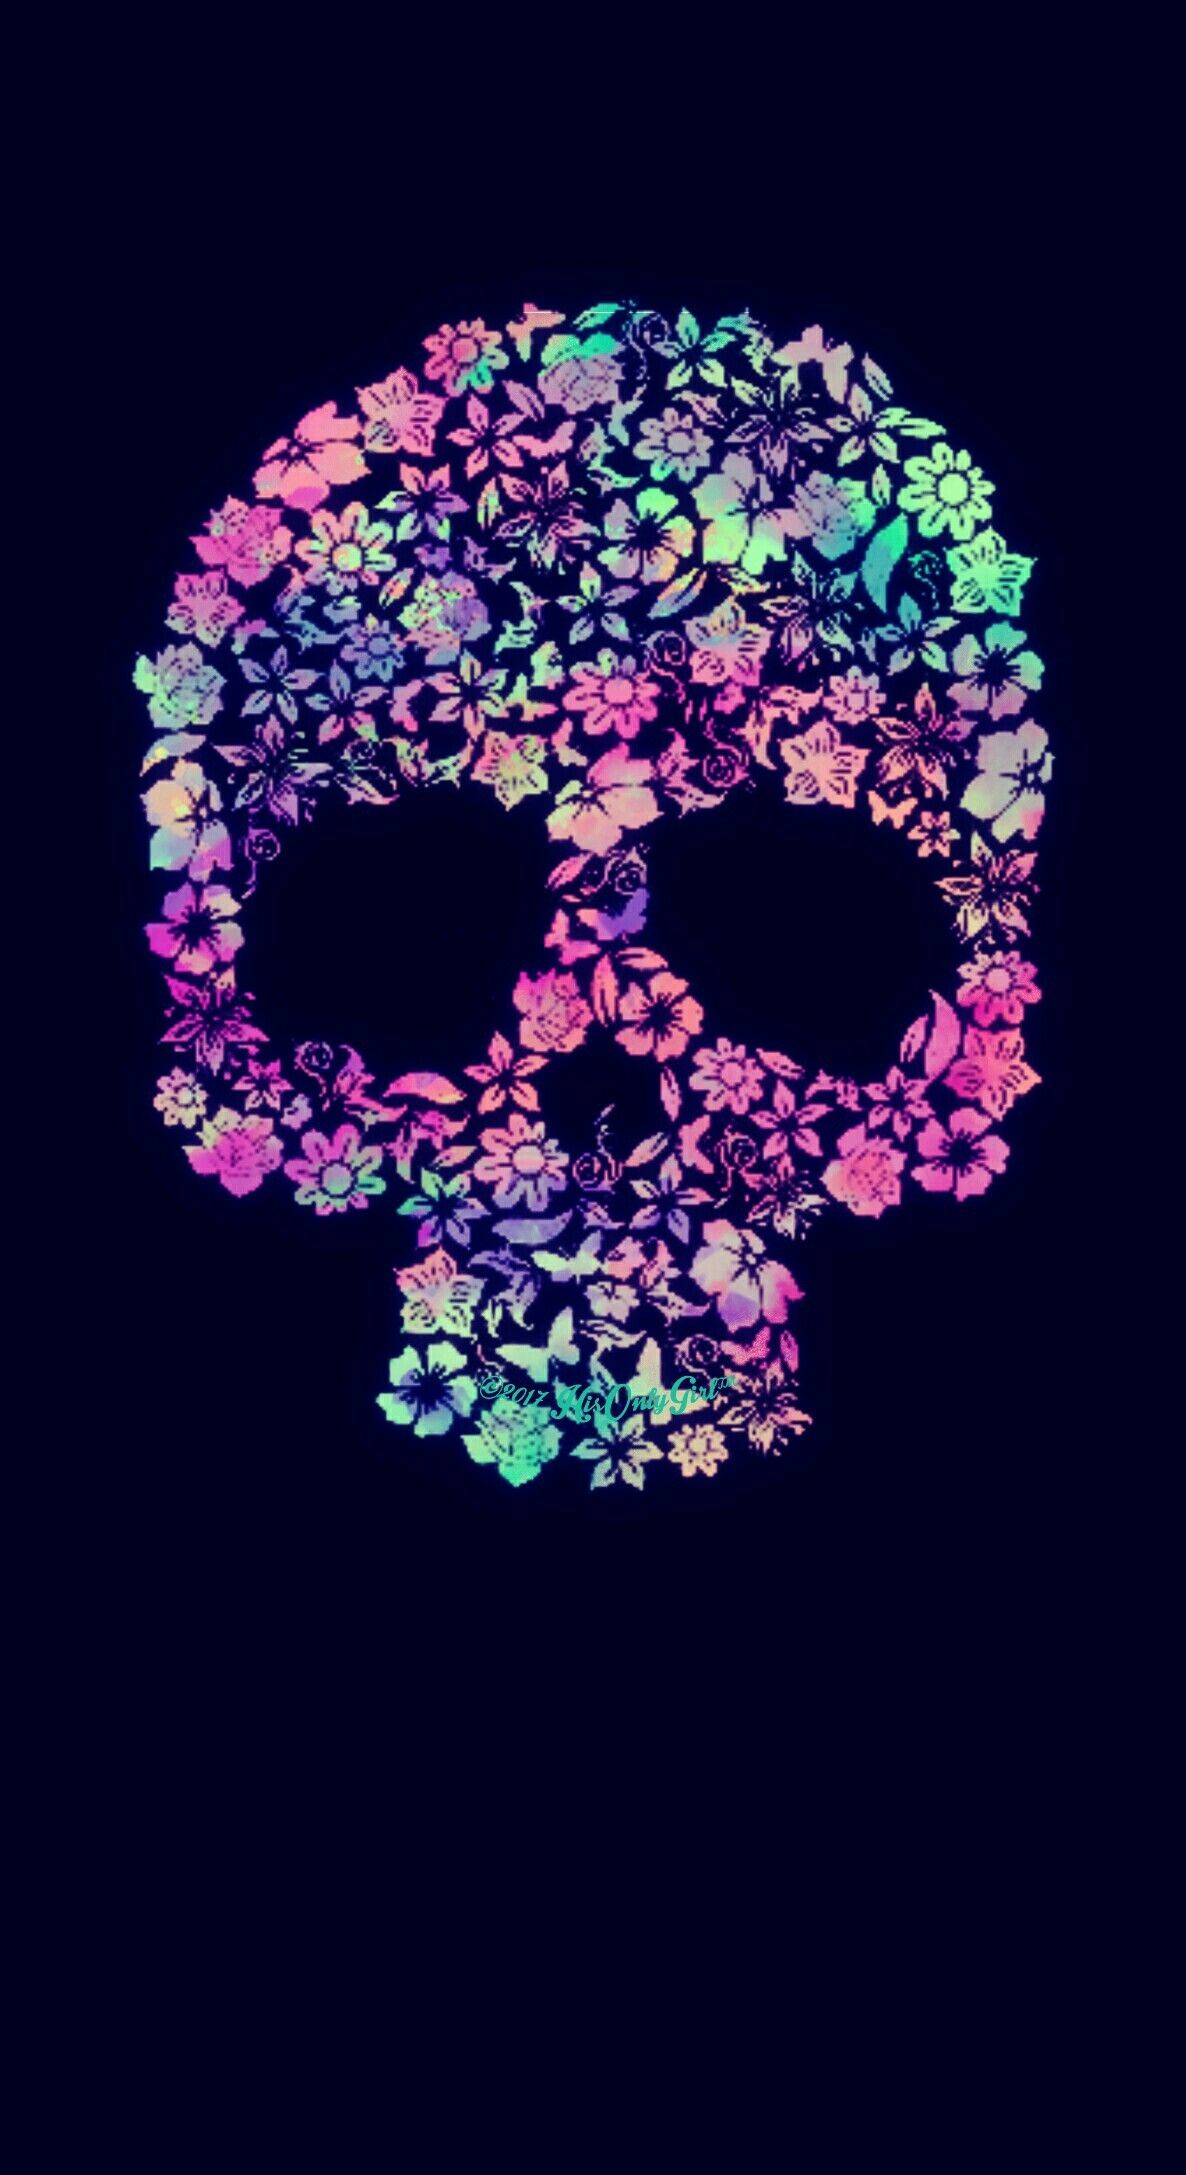 Res: 1186x2175, Sweet floral skull galaxy wallpaper I created for the app CocoPPa!